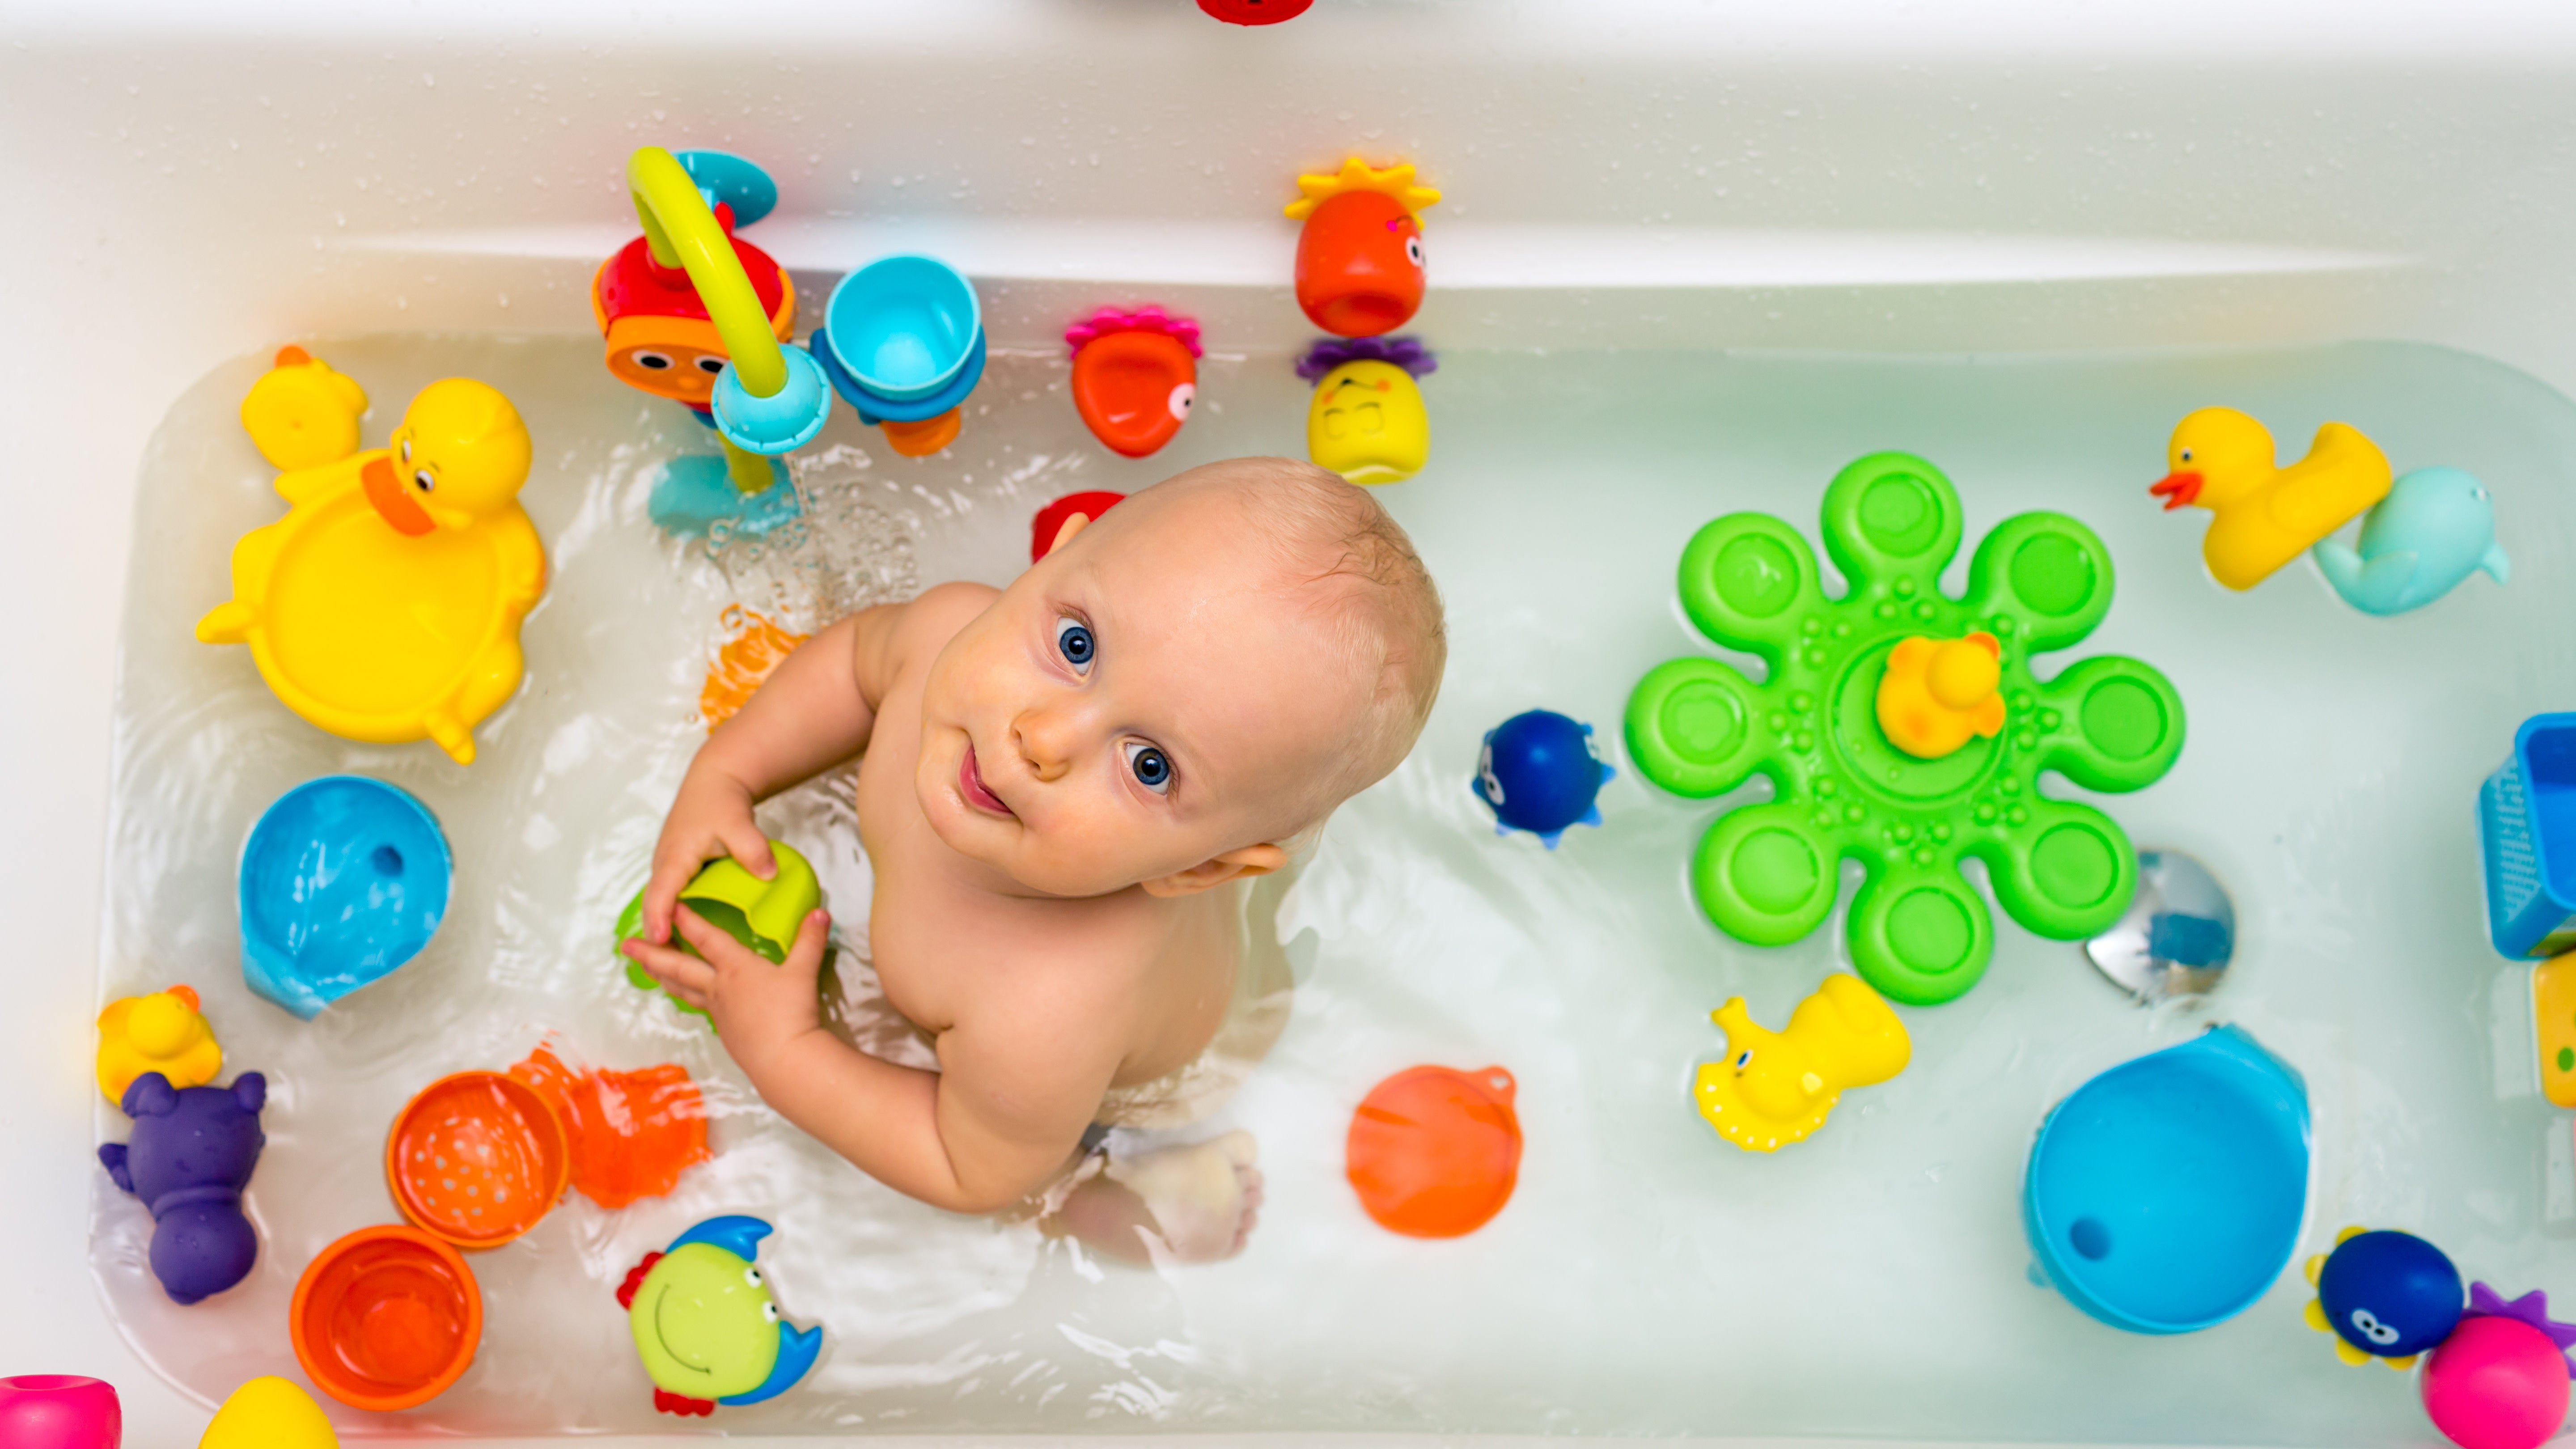 The Best Way To Store Kid's Bath Toys